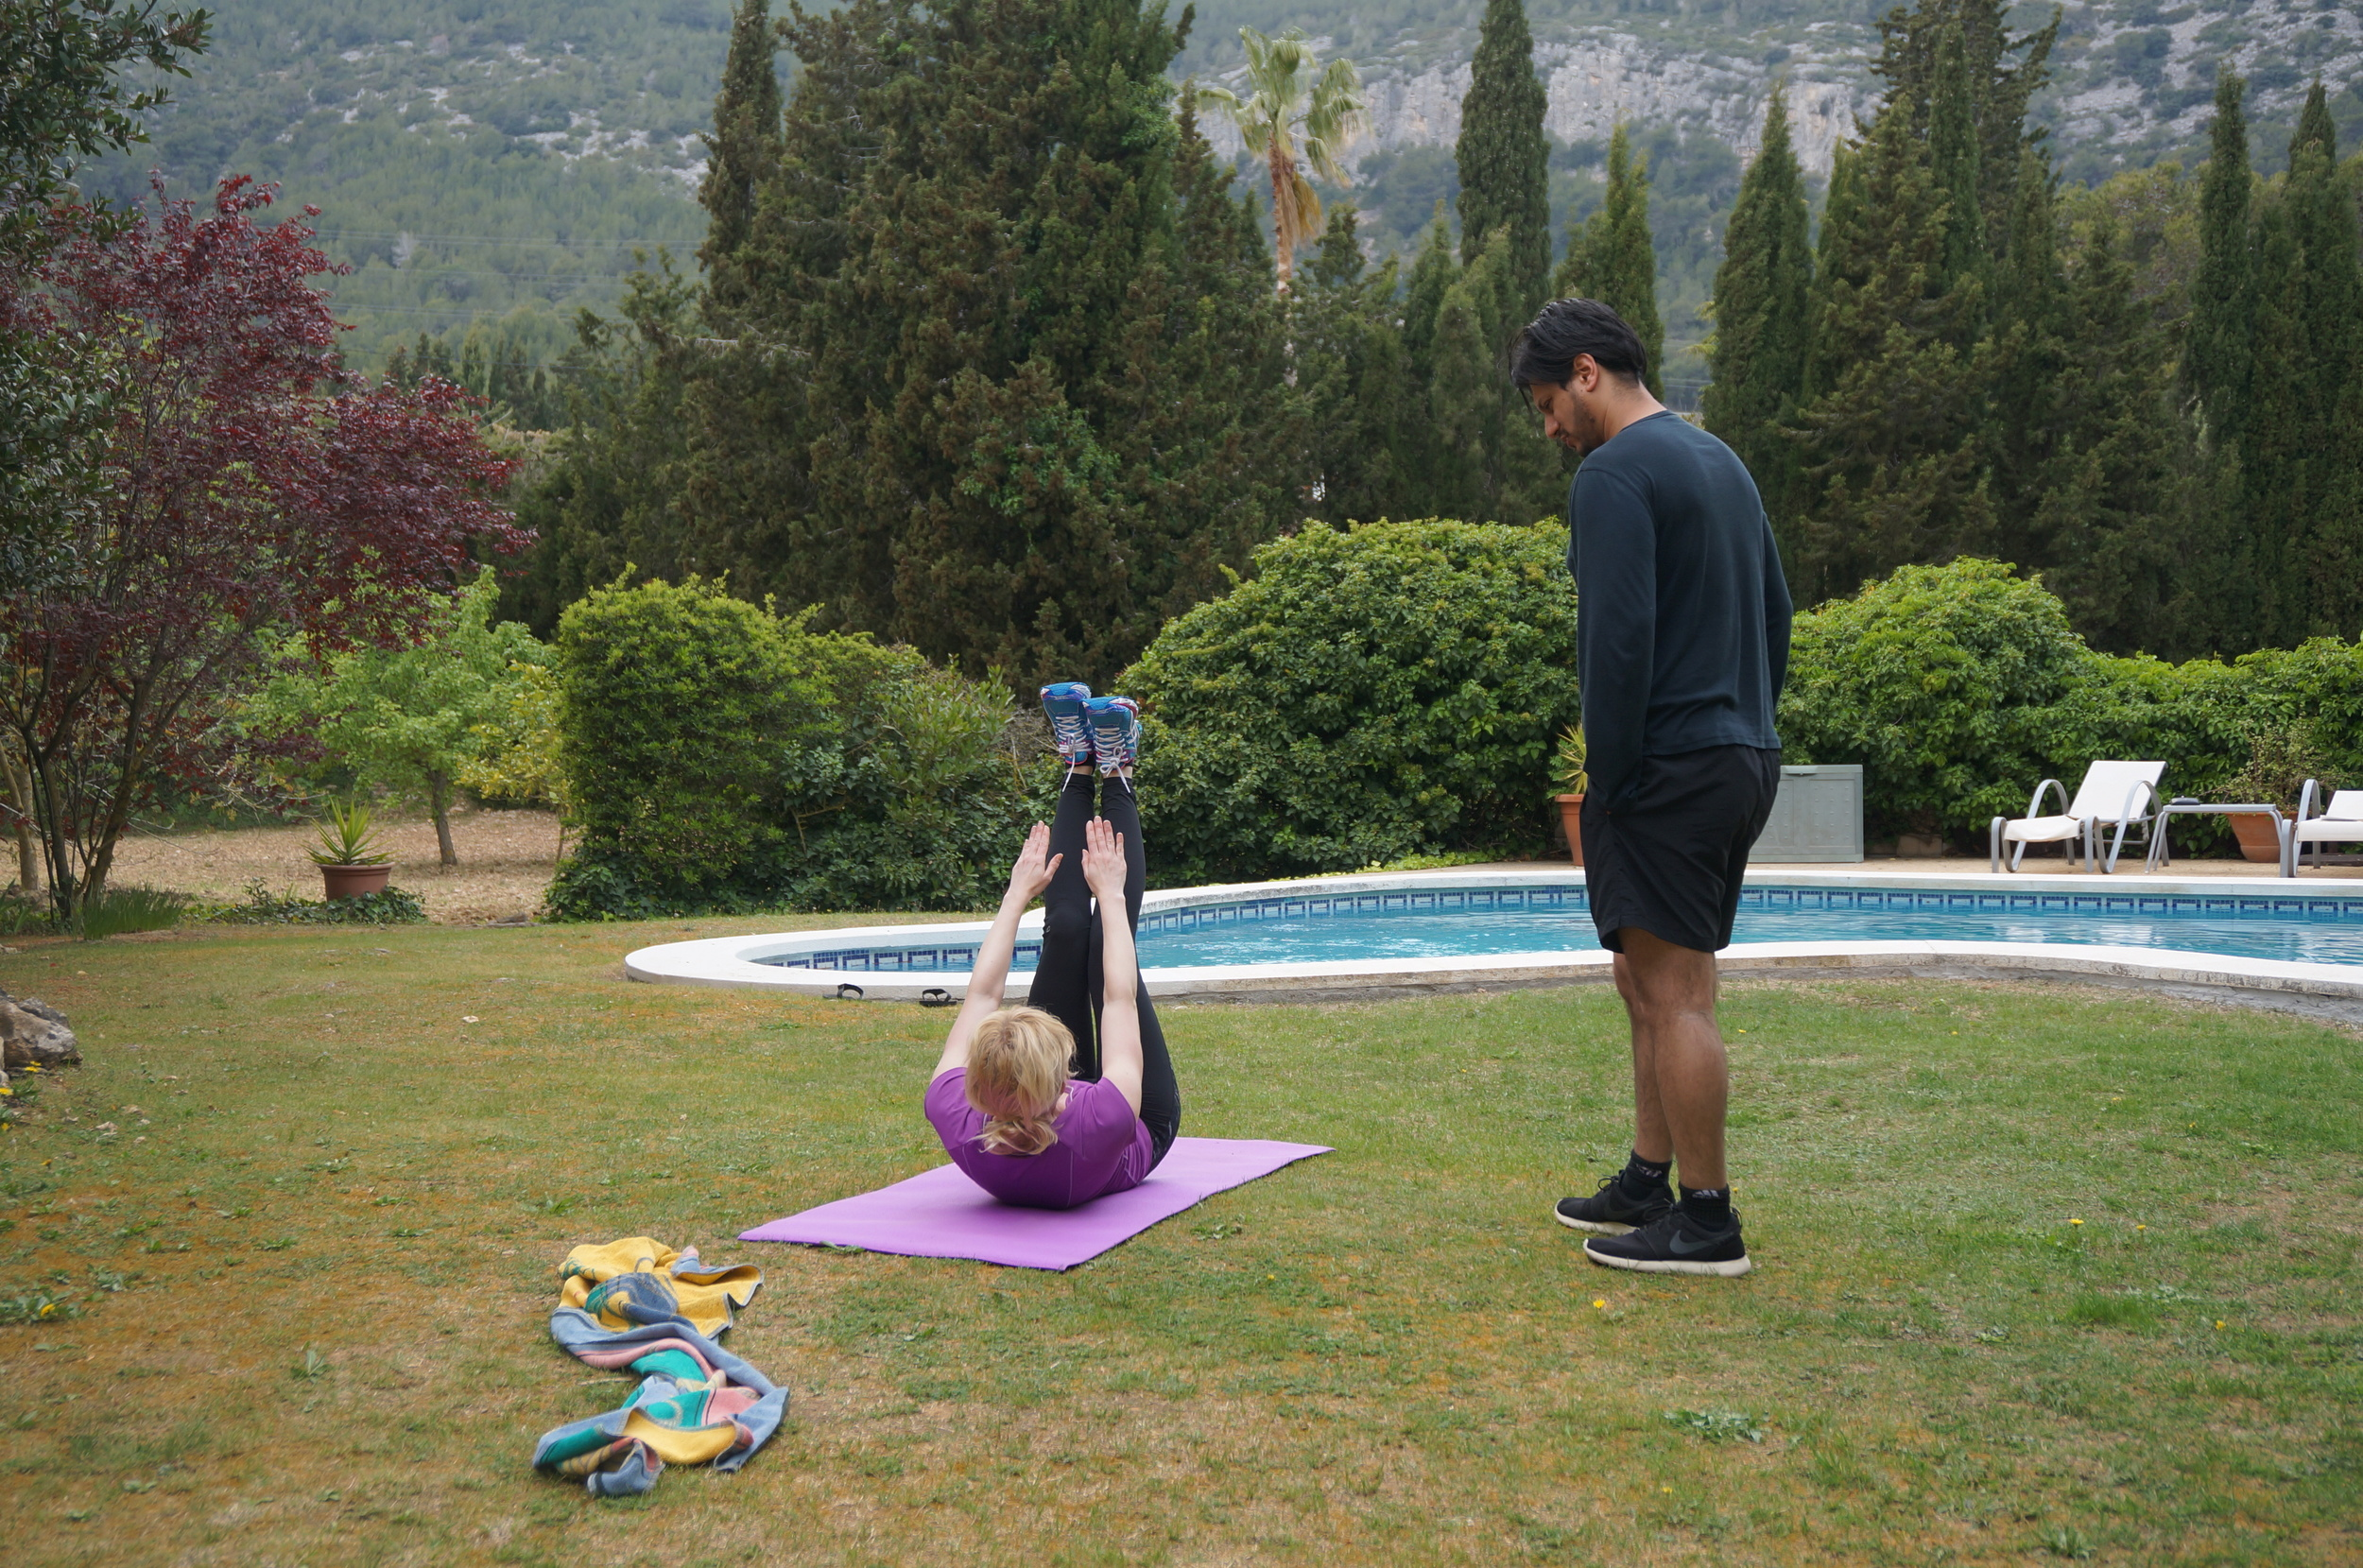 Personal training by the pool.